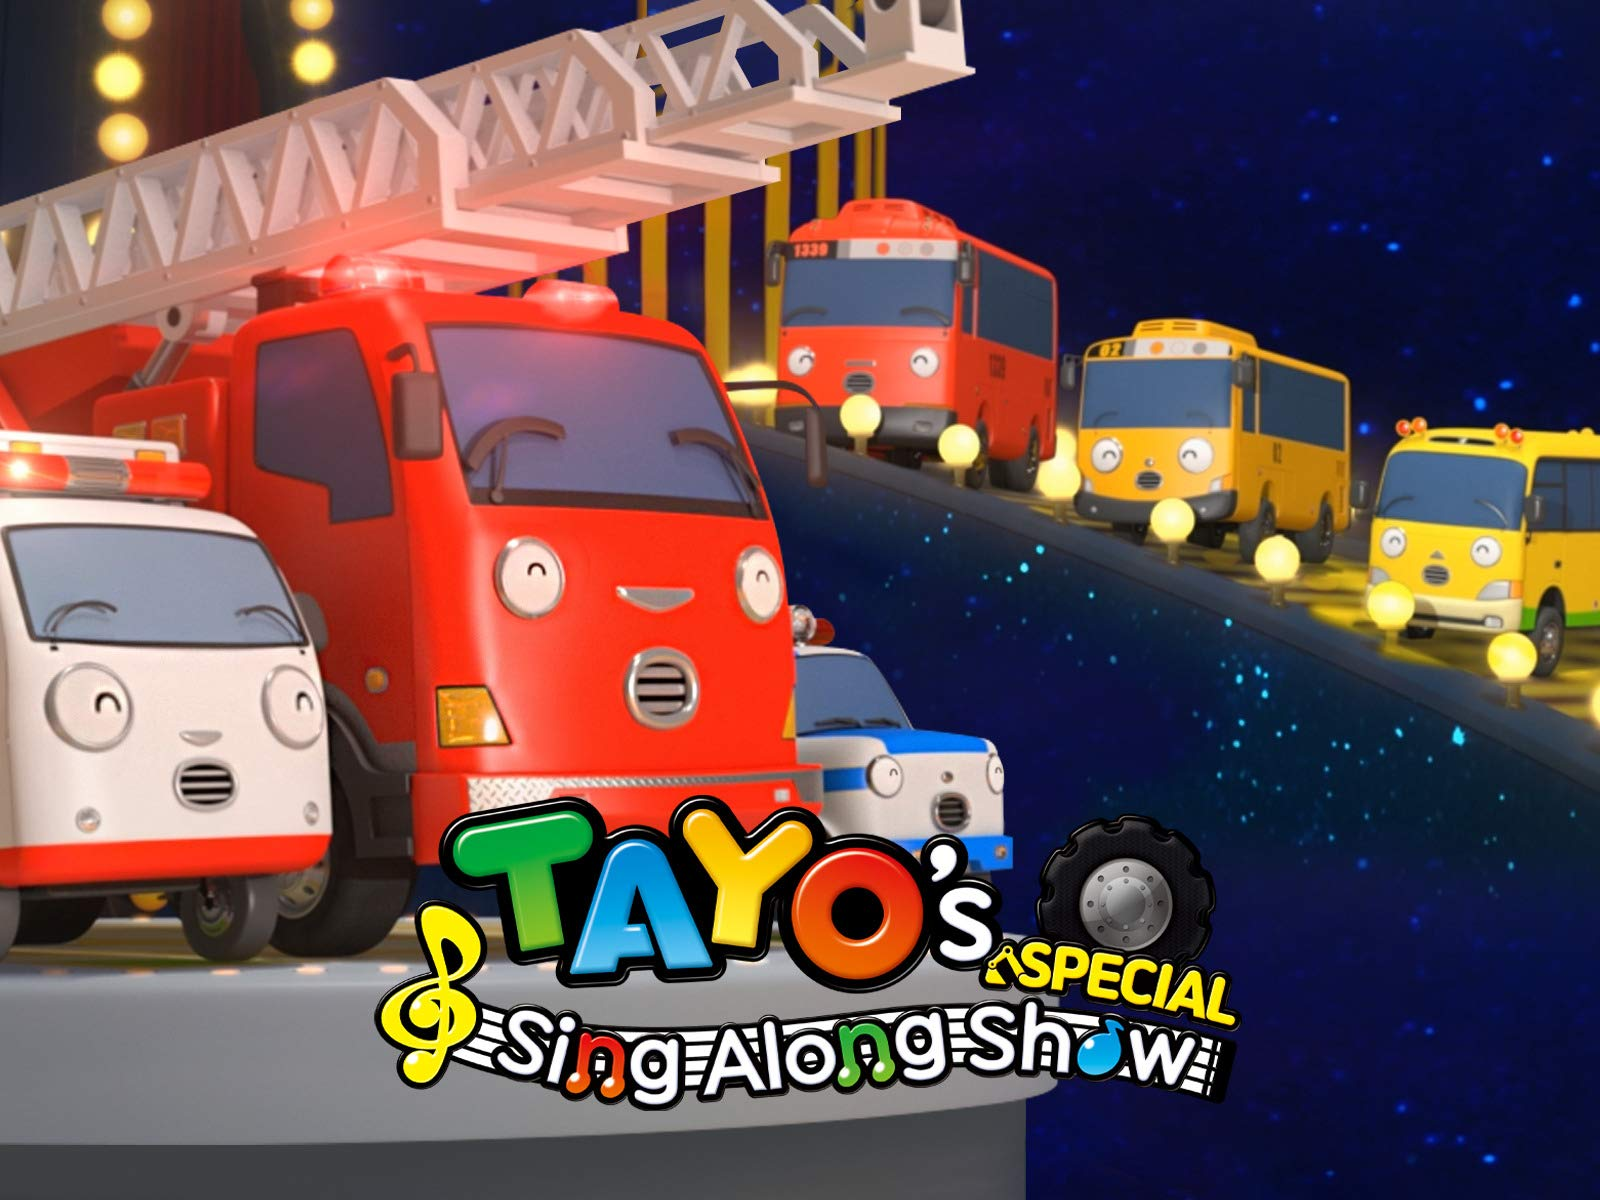 Tayo's Sing Along Show Special